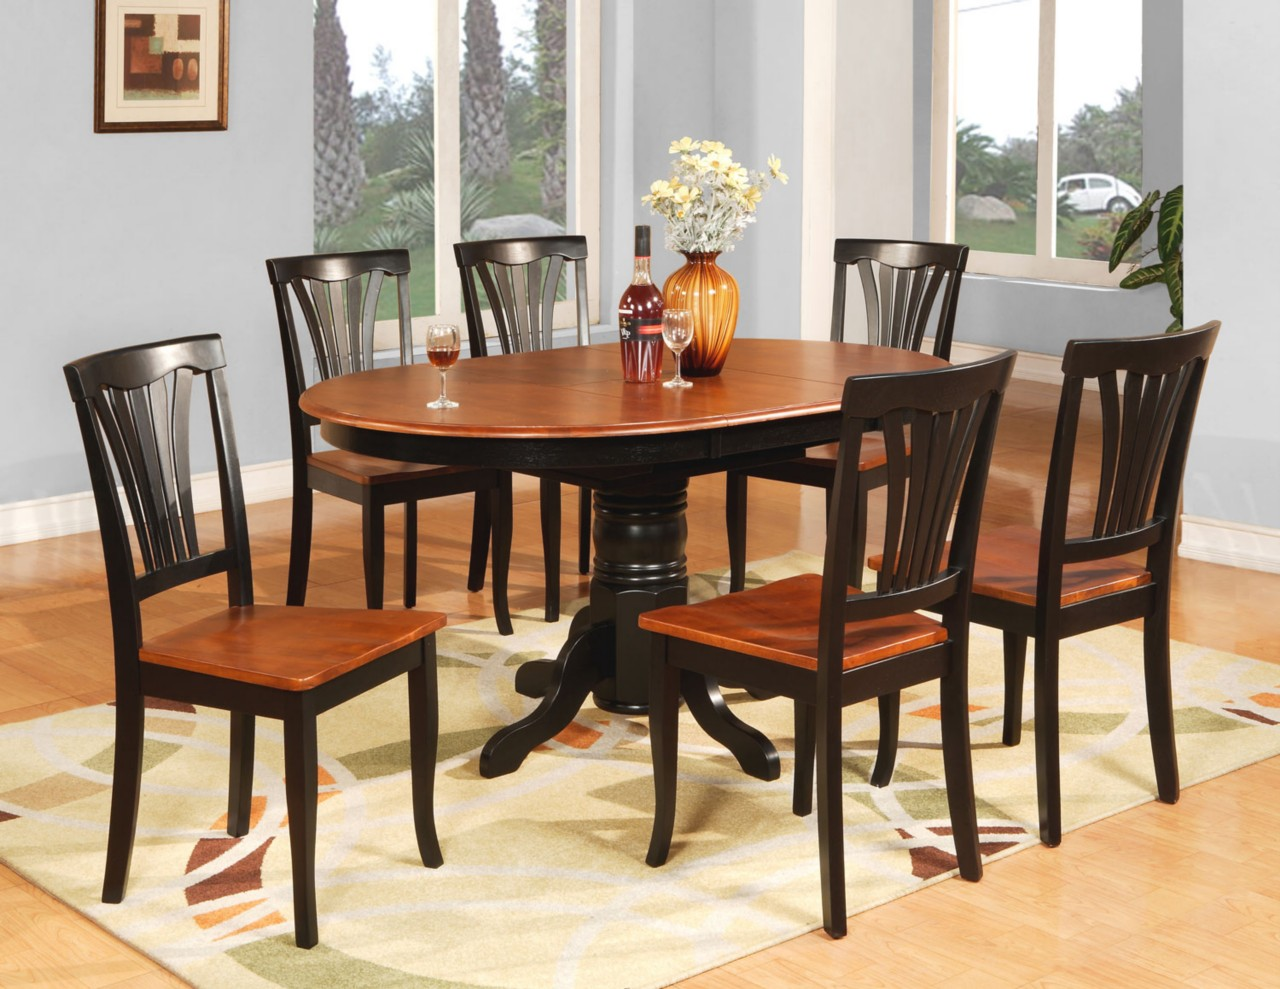 7 PC OVAL DINETTE KITCHEN DINING ROOM TABLE Amp 6 CHAIRS